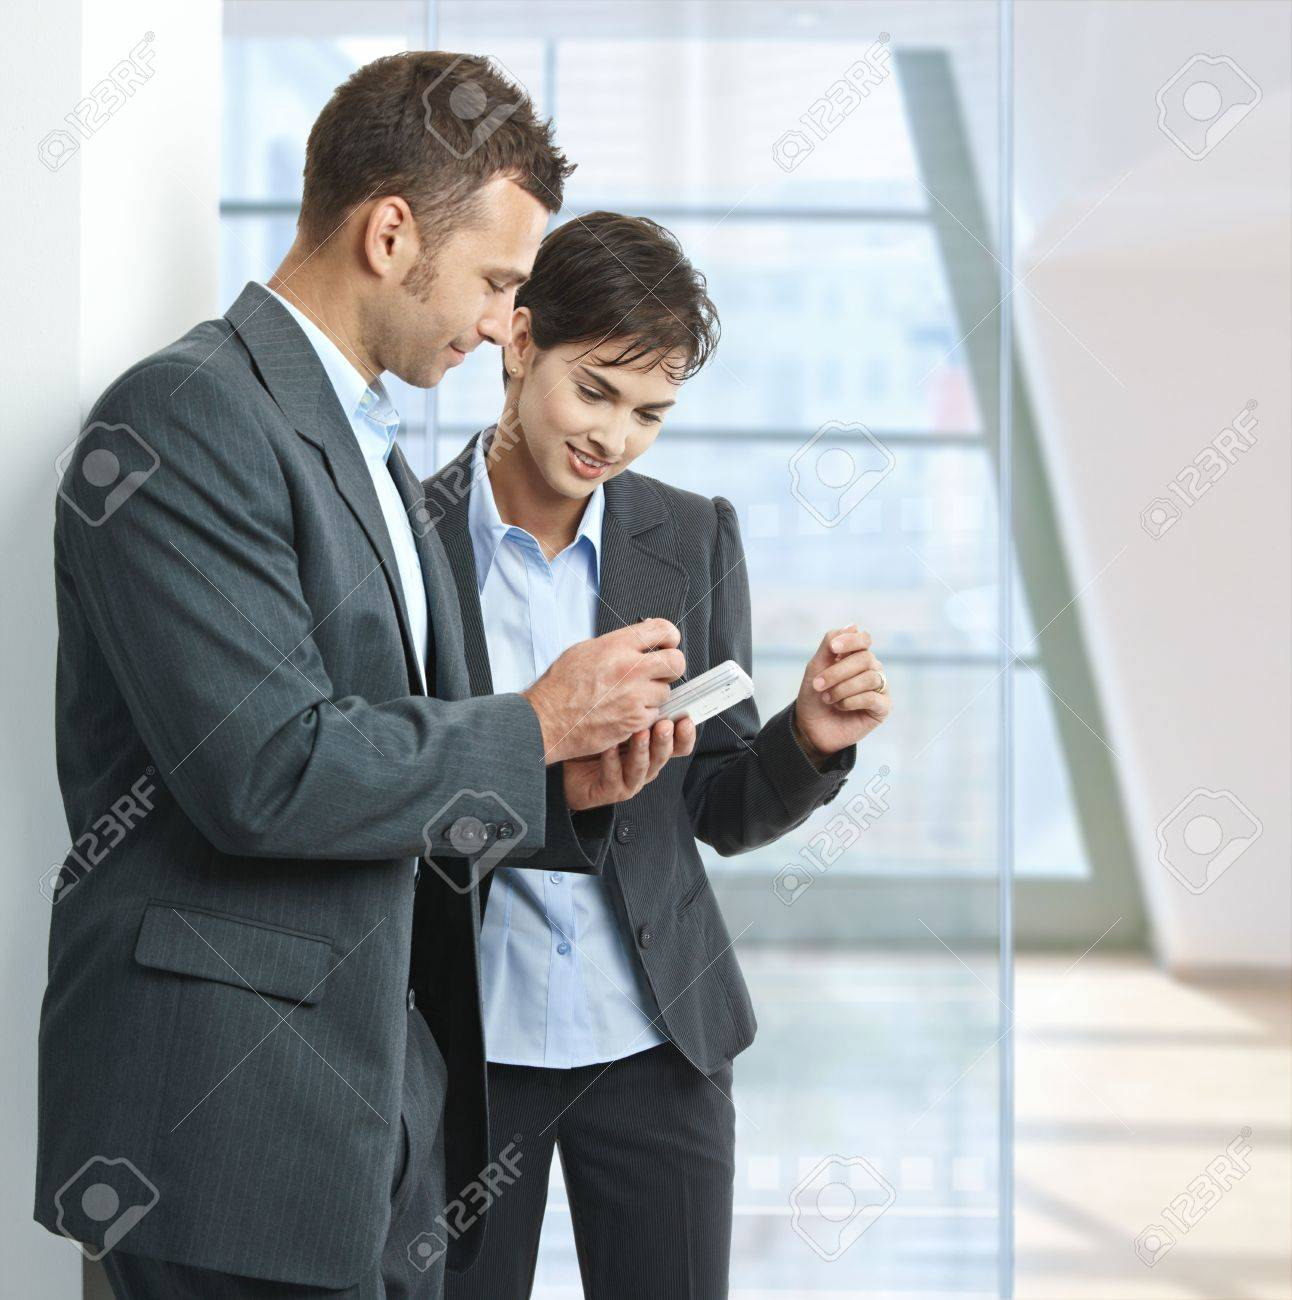 Two businesspeople standing in office lobby , looking at smart mobile phone, smiling. Stock Photo - 5758654